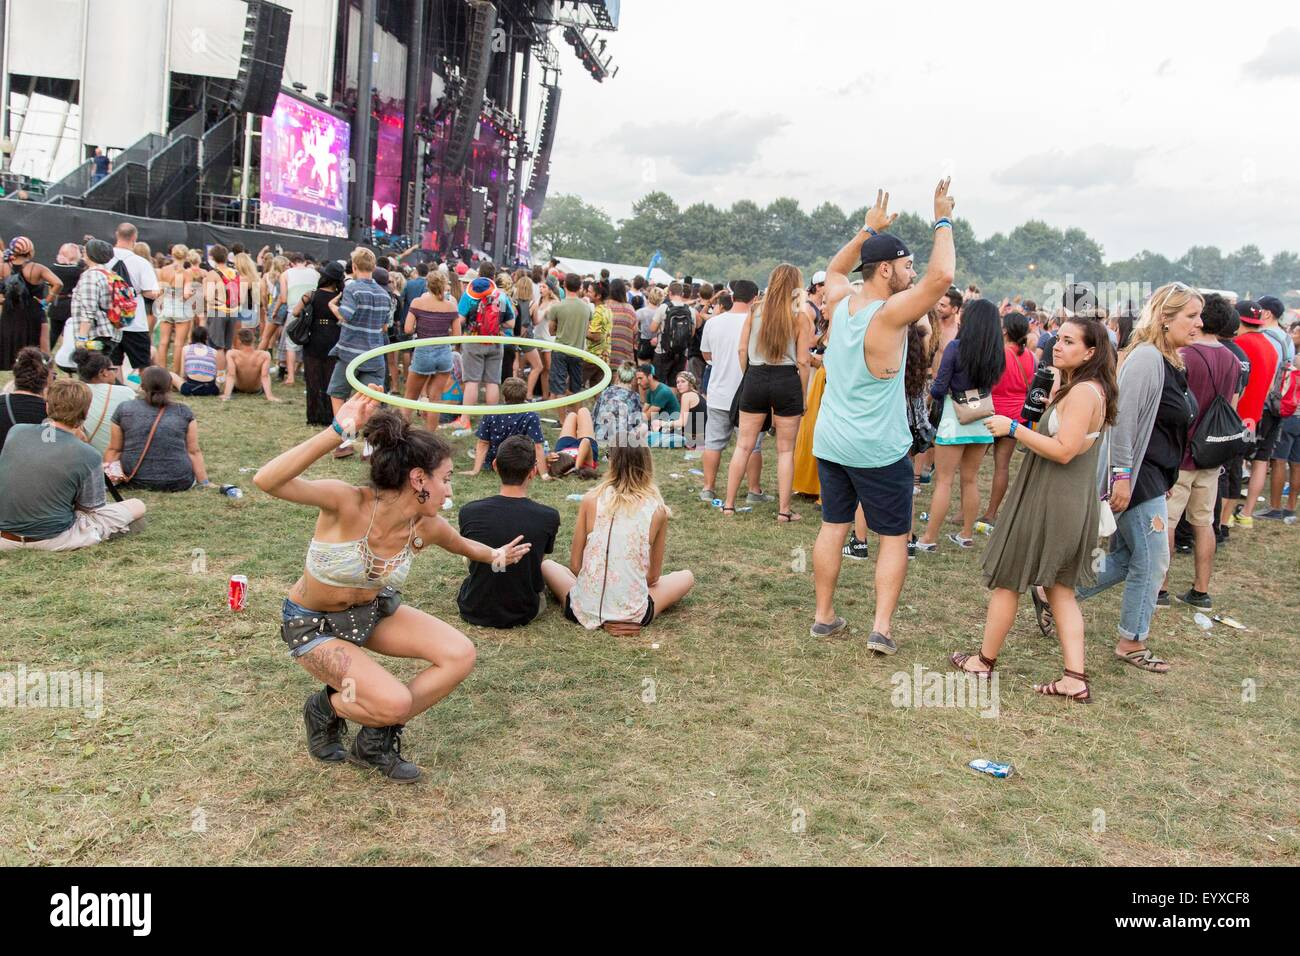 Chicago, Illinois, USA. 2nd Aug, 2015. A fan dances with a hula hoop during ASAP Rocky in Grant Park at the Lollapalooza - Stock Image